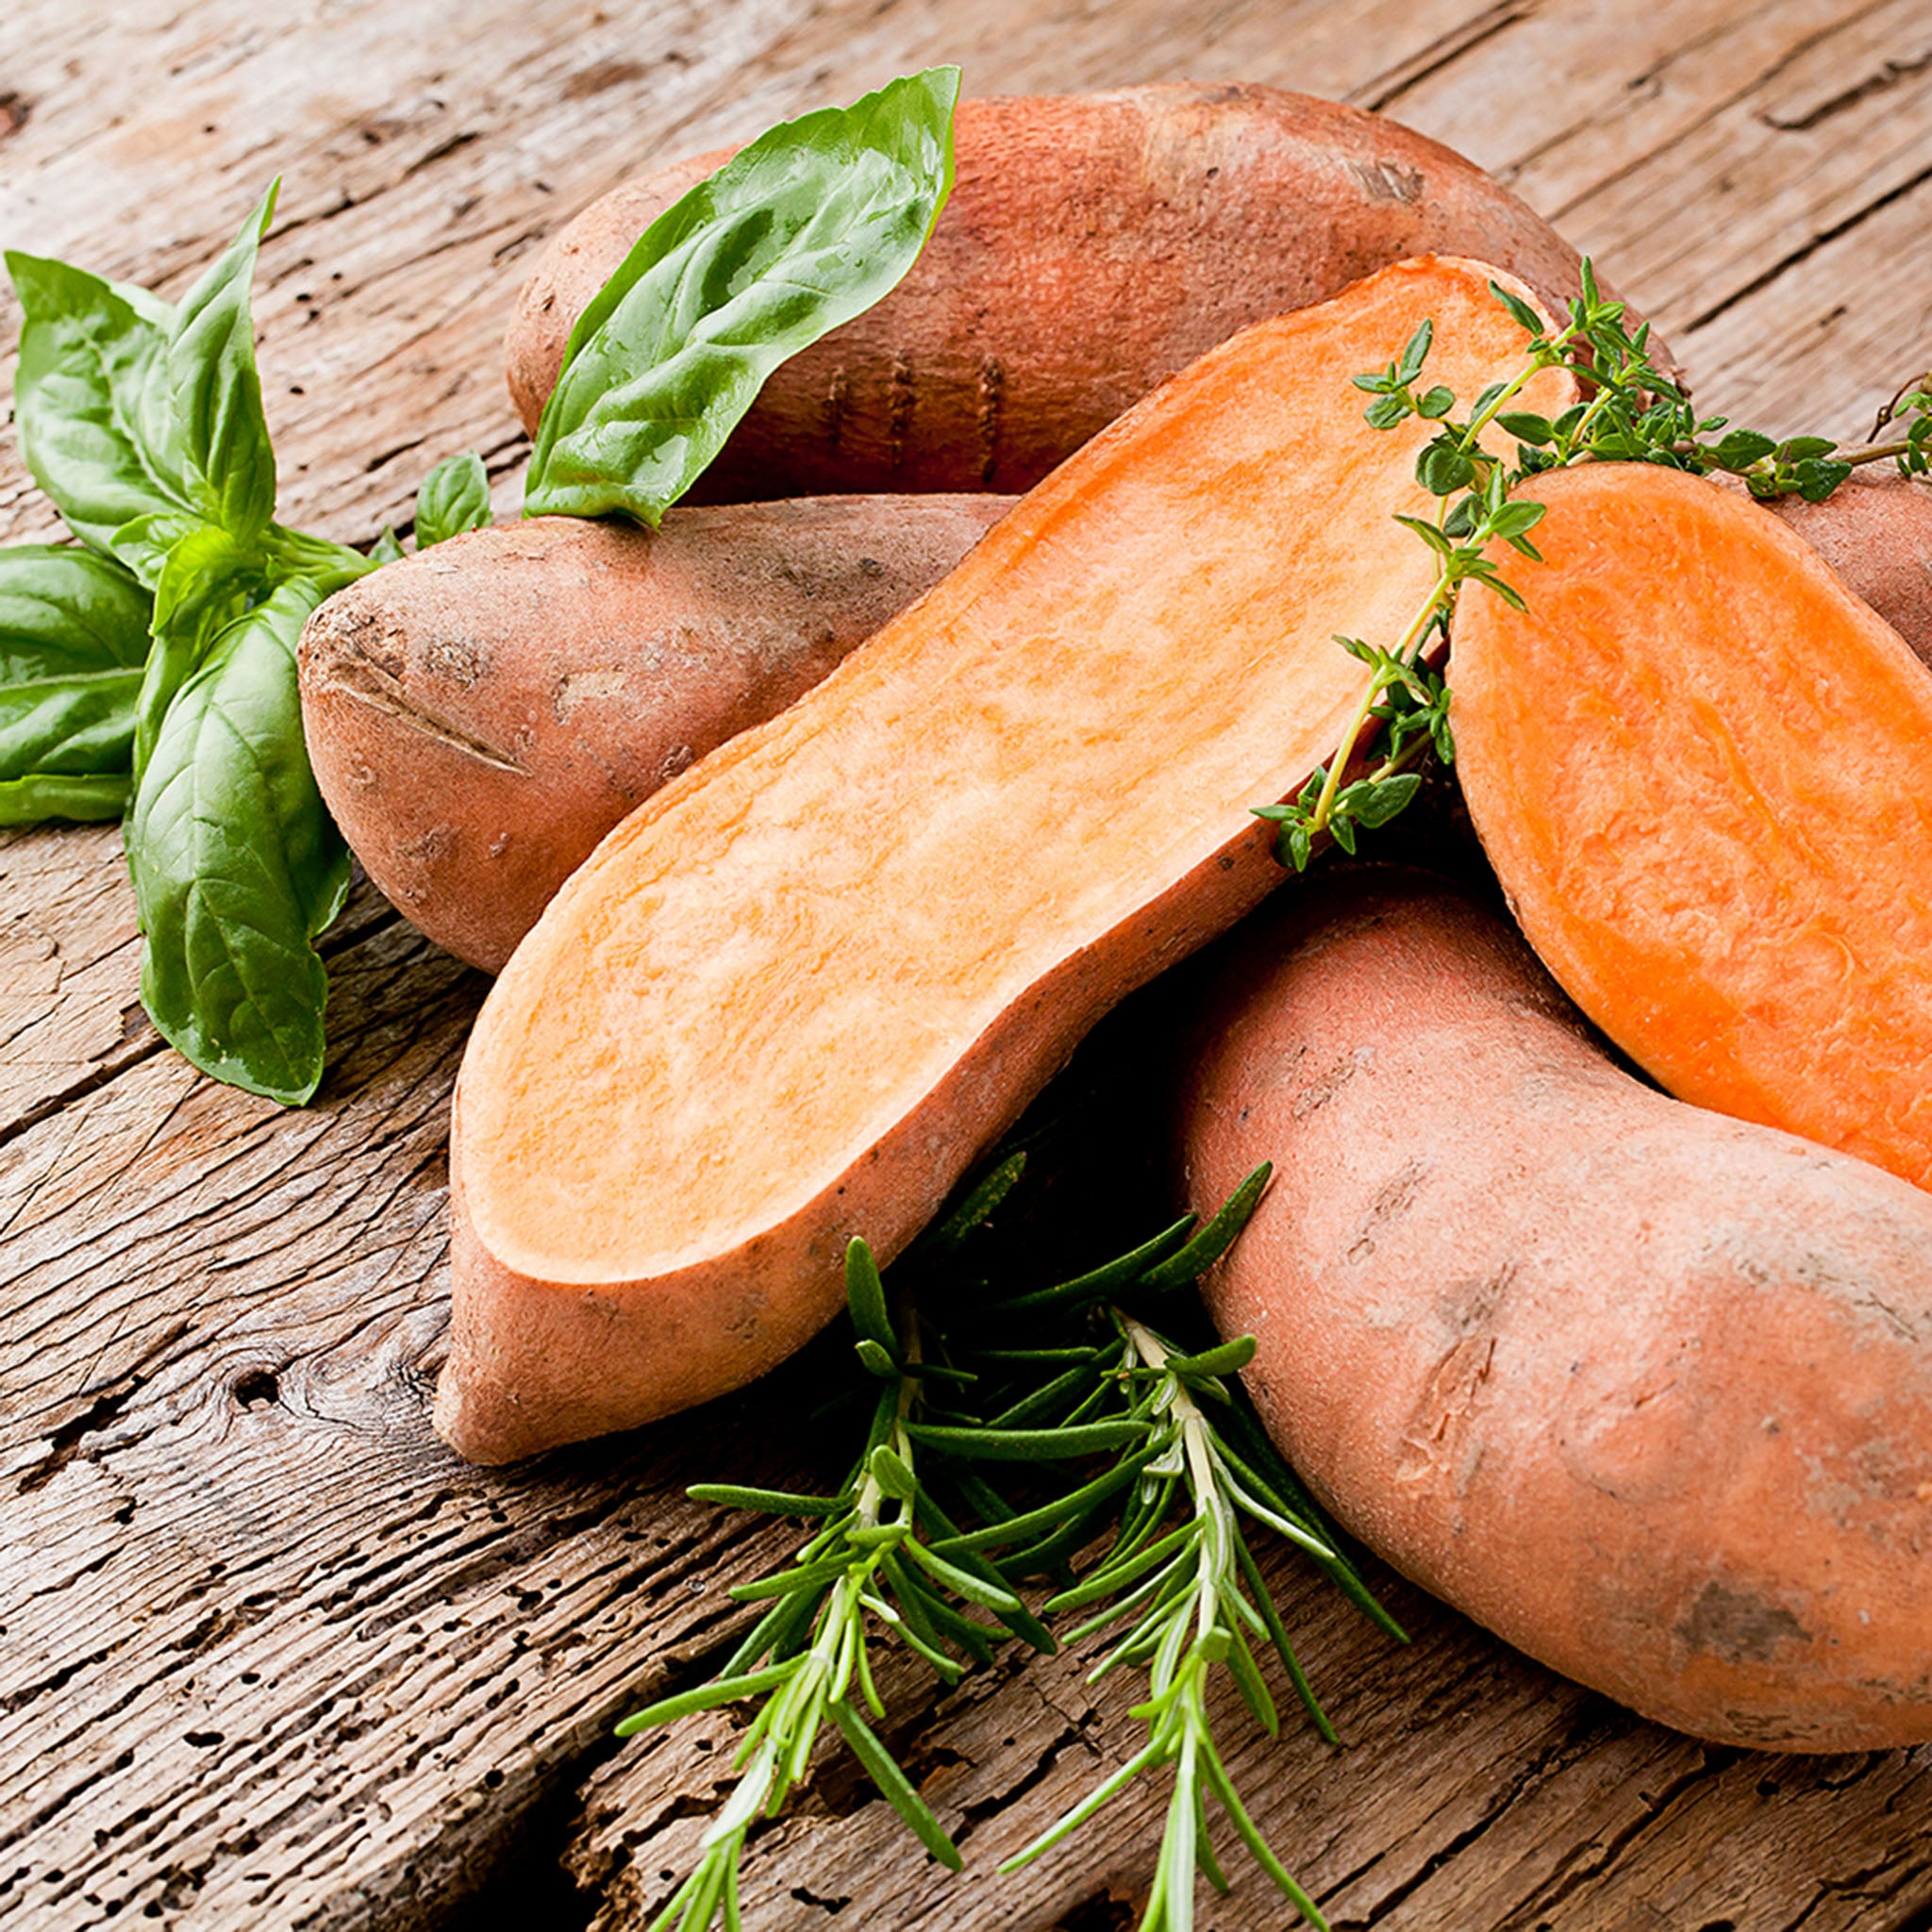 Sweet potatoes are a nutrition energy source